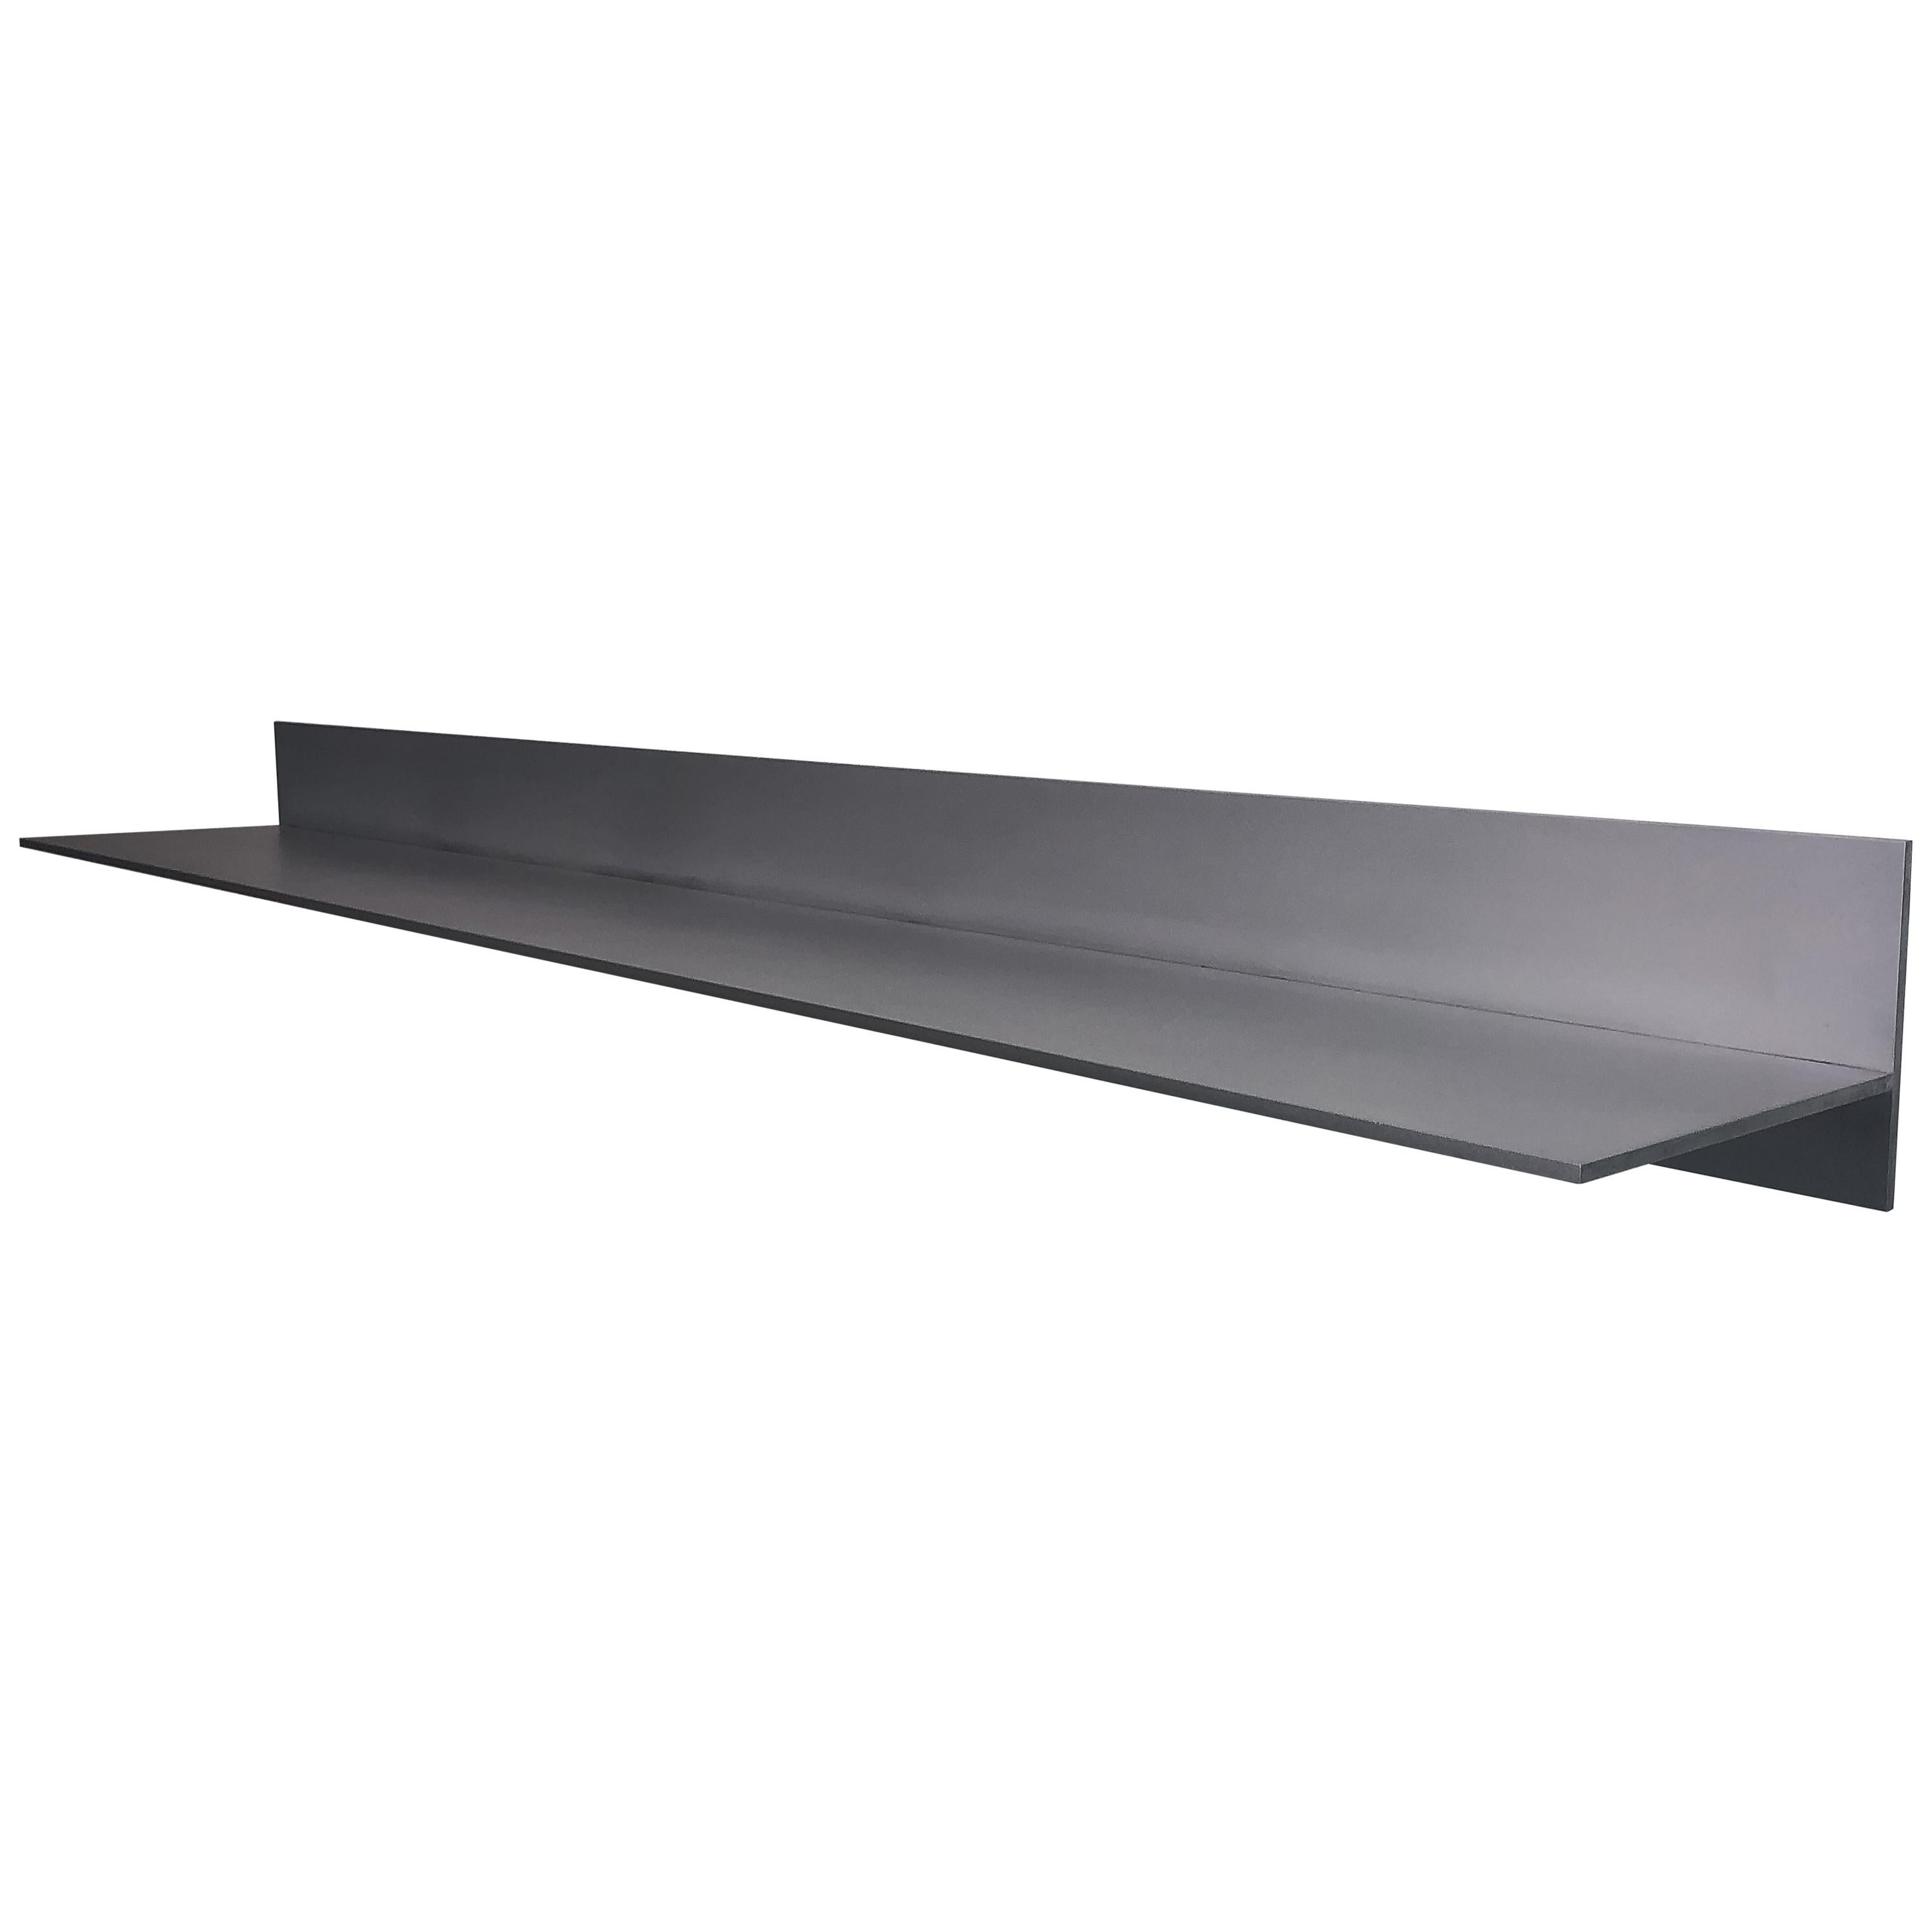 L-Wall Shelf in Waxed and Polished Aluminum Plate by Jonathan Nesci